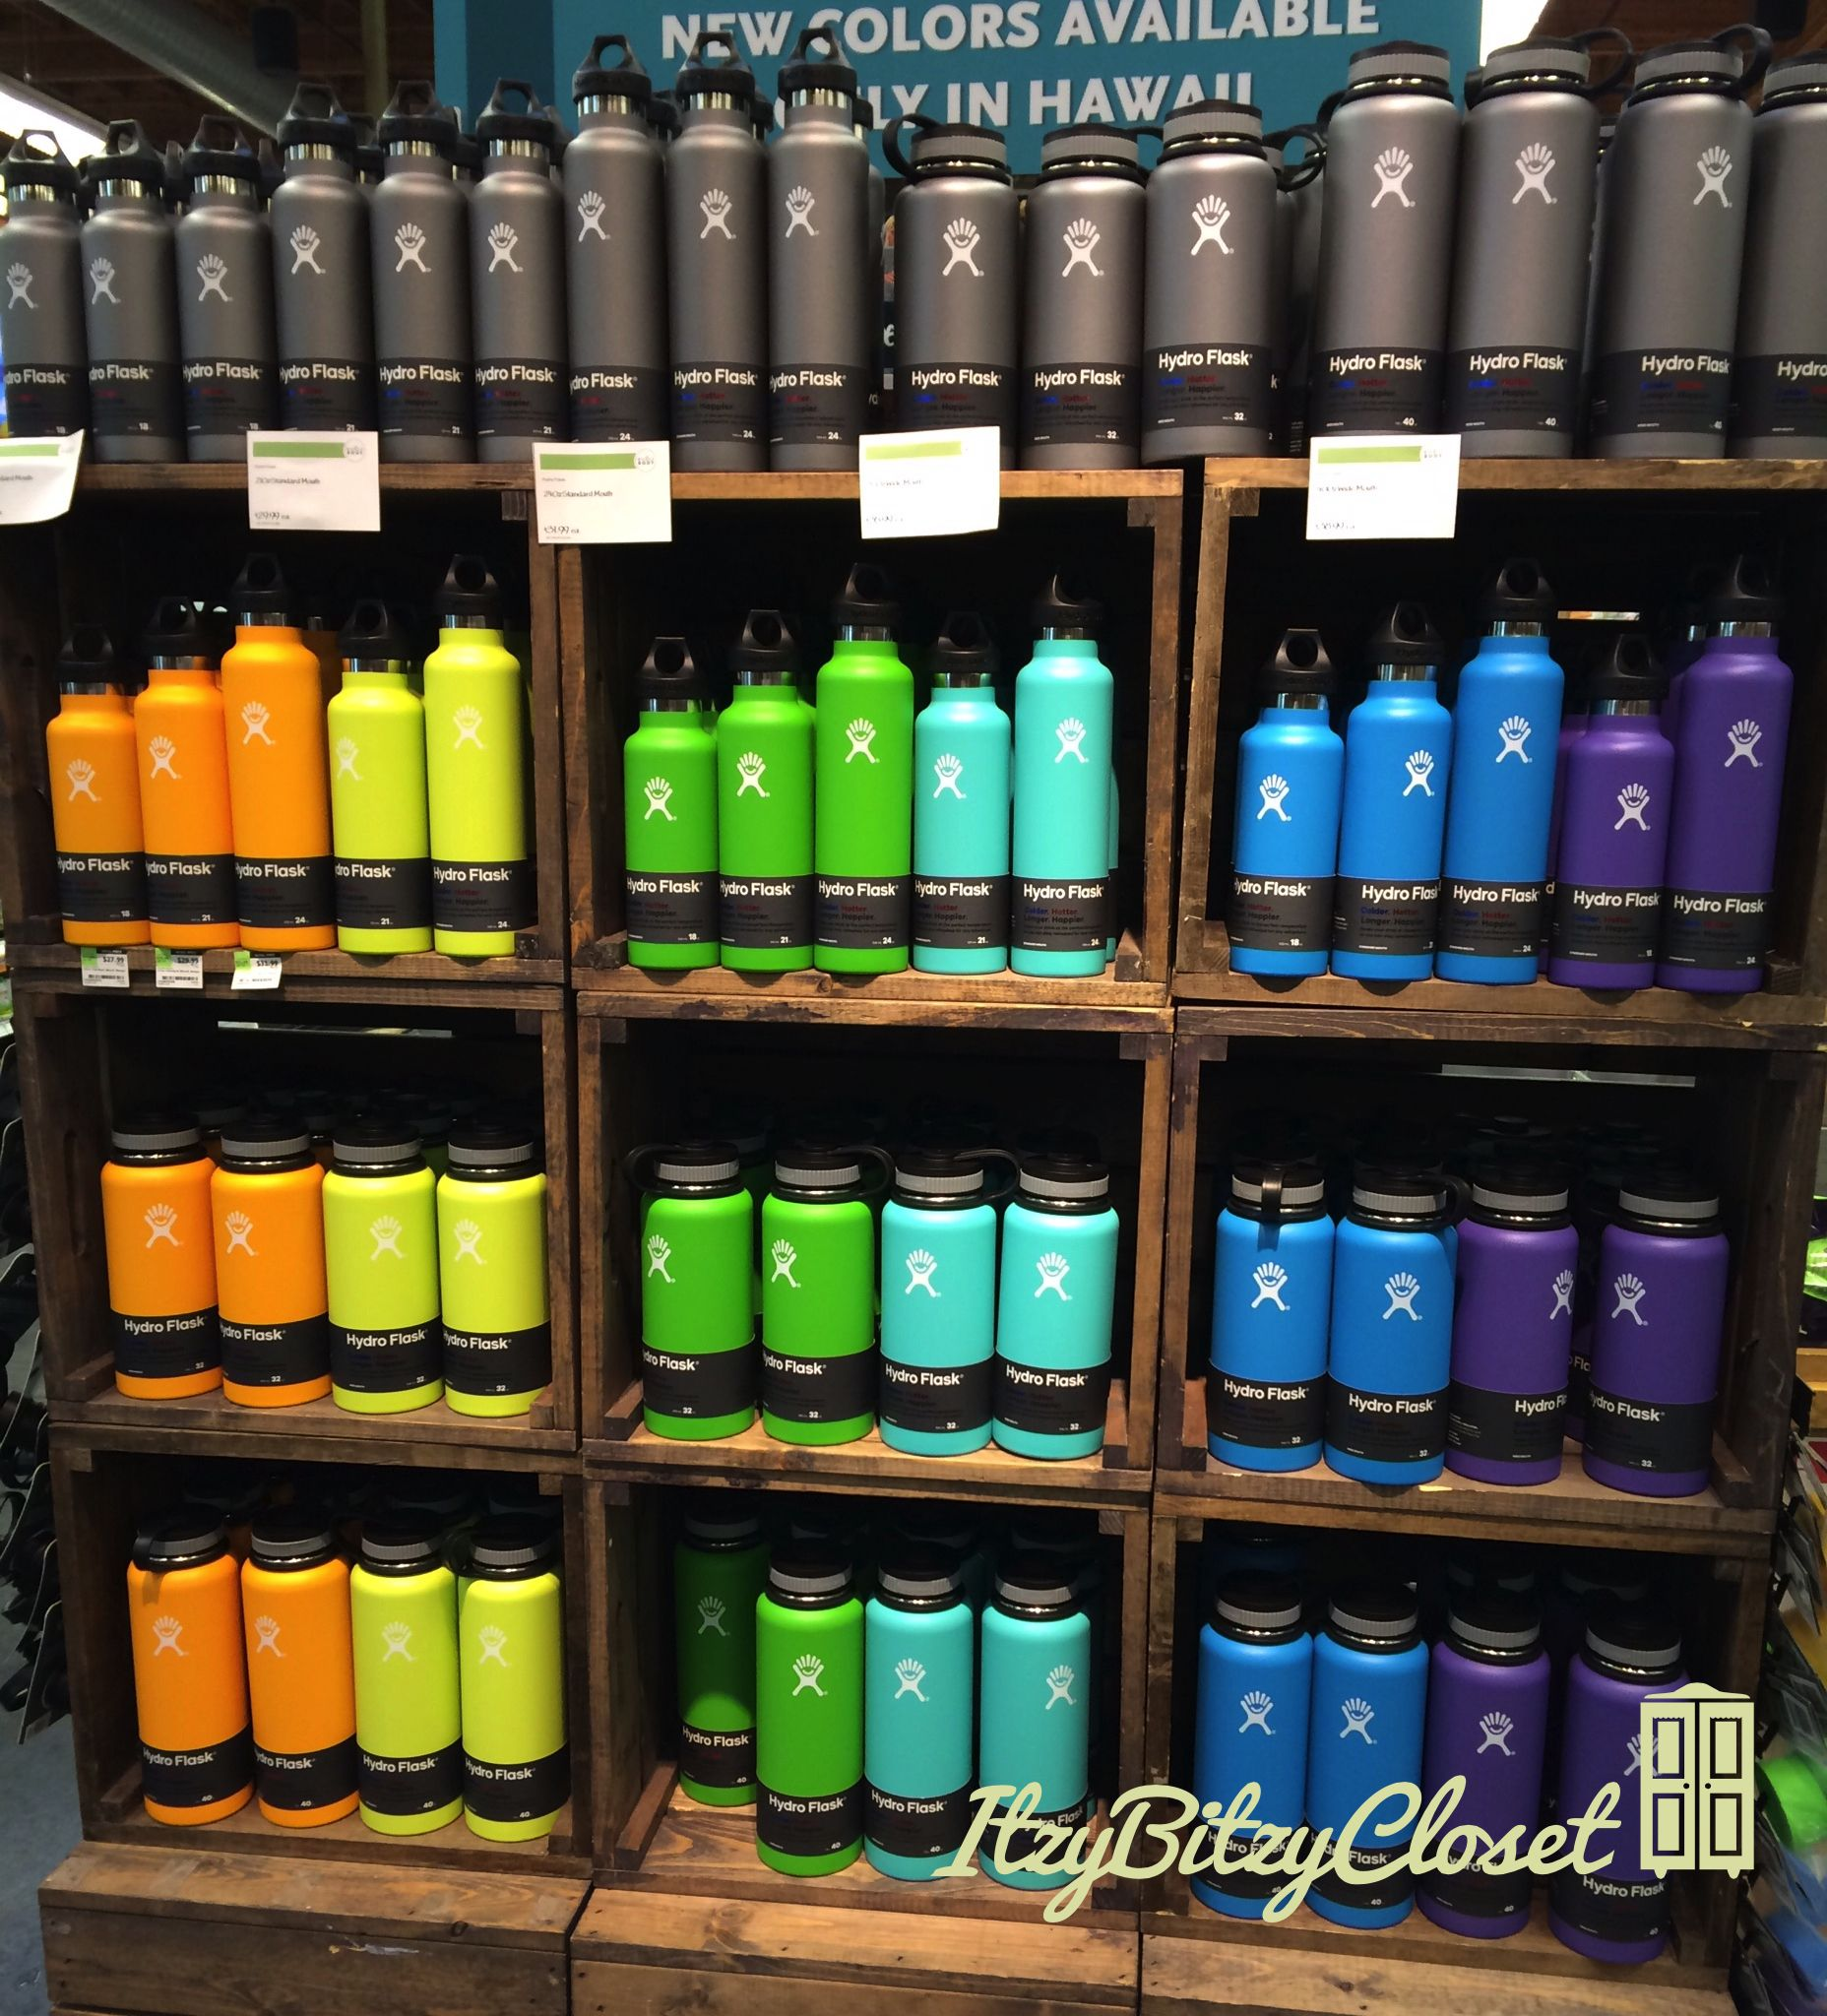 Hawaii Exclusive Colors Hydro Flask 18oz Standard Mouth